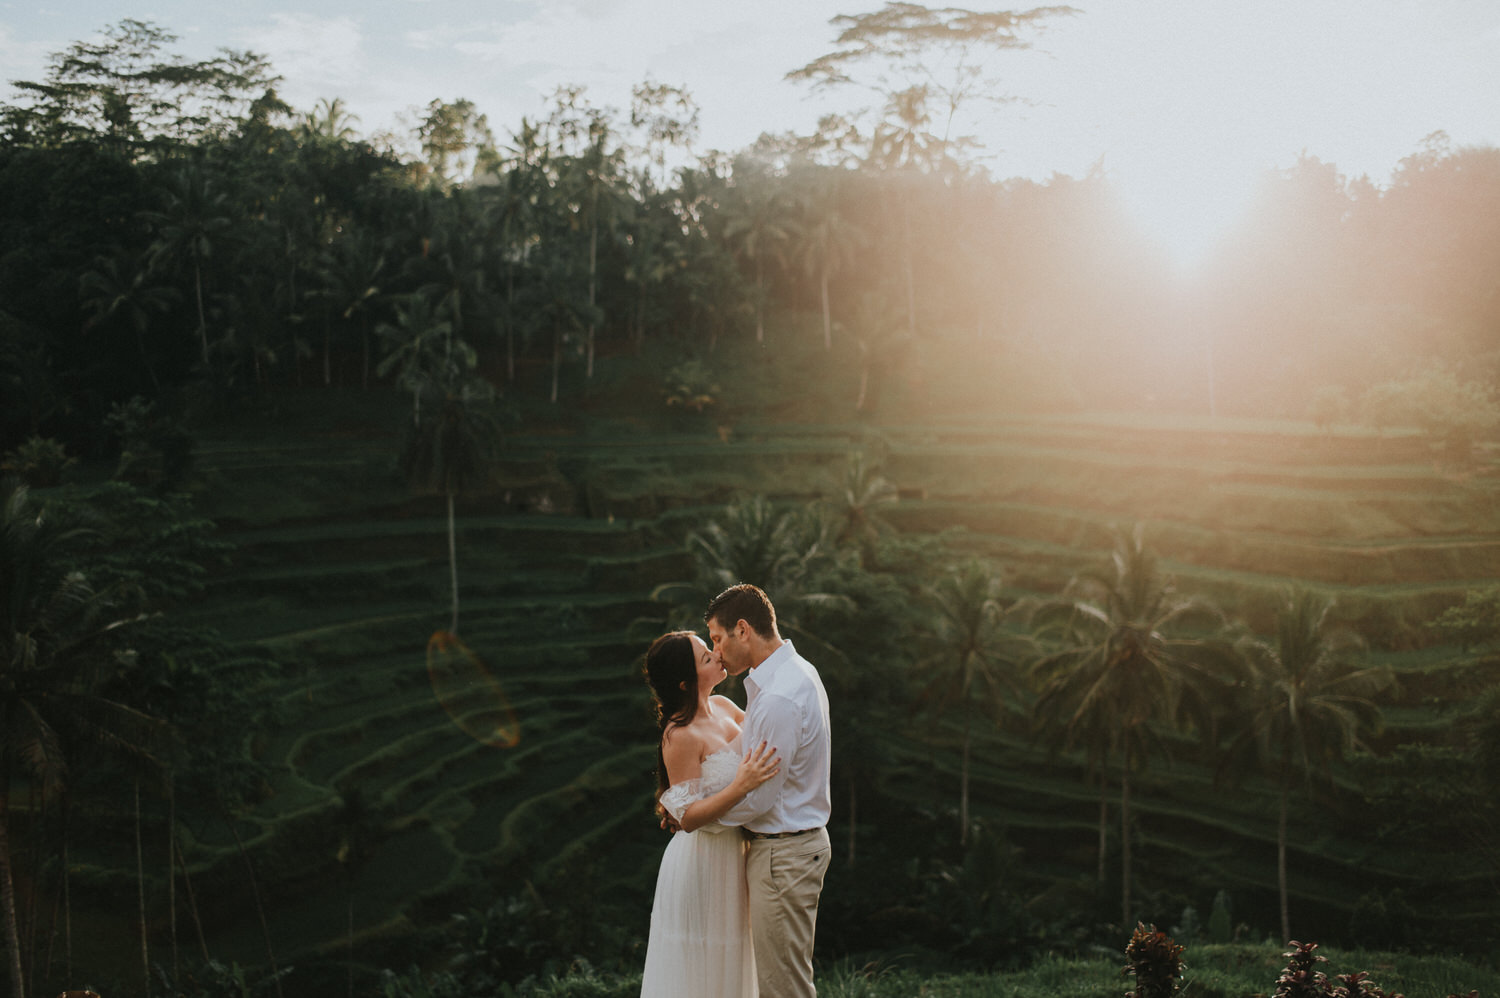 bali wedding - elopement - ubud wedding - diktatphotography - olga + Jason - 9